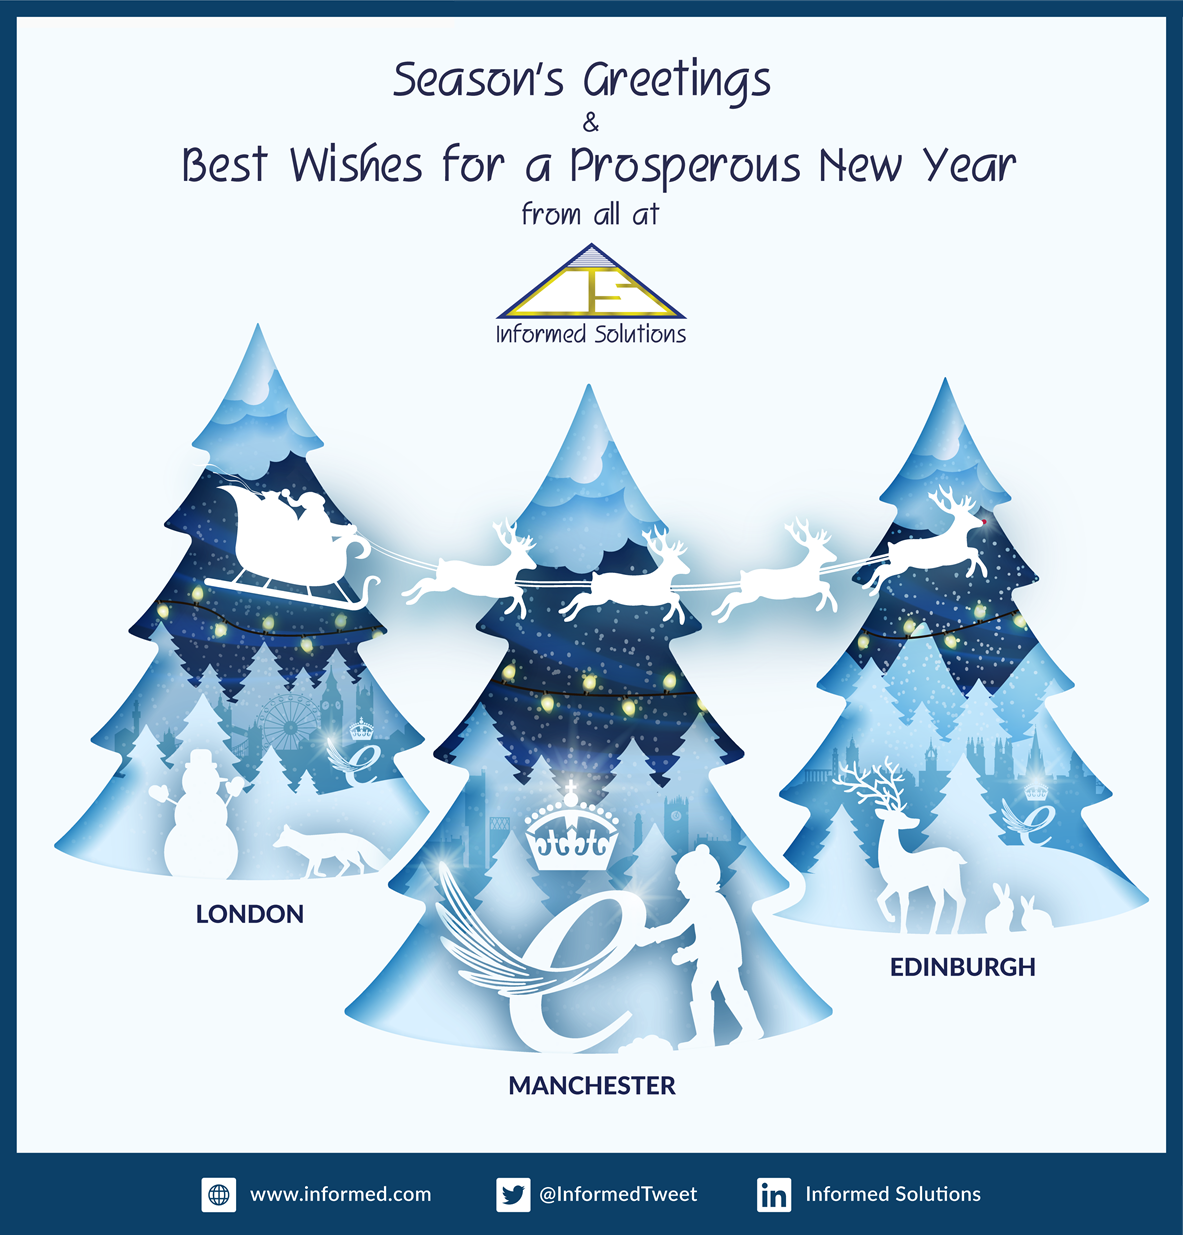 Season's Greetings from Informed Solutions!